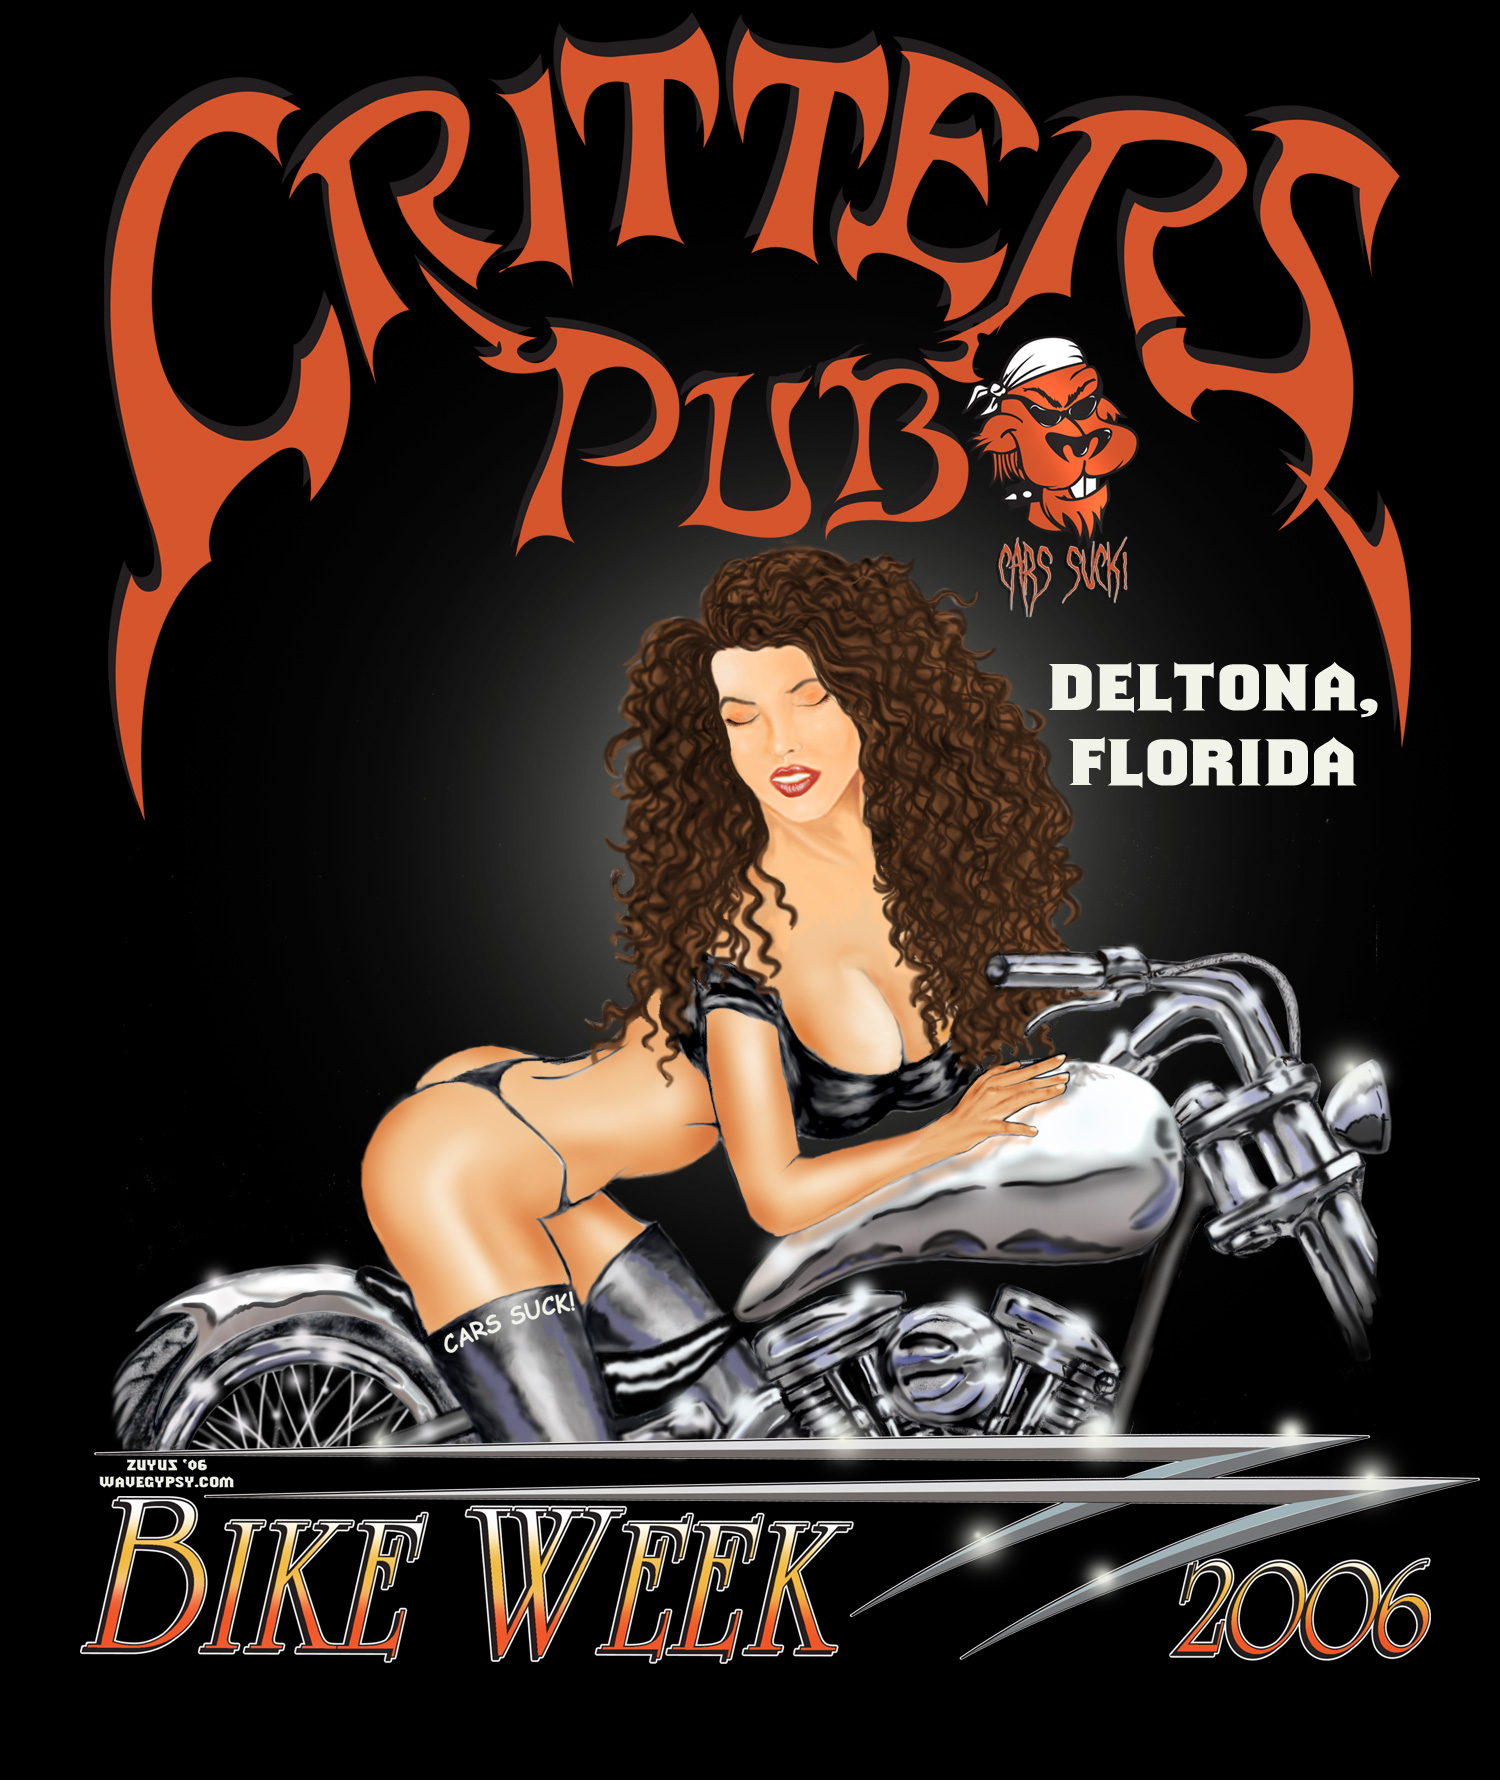 critters pub bike week